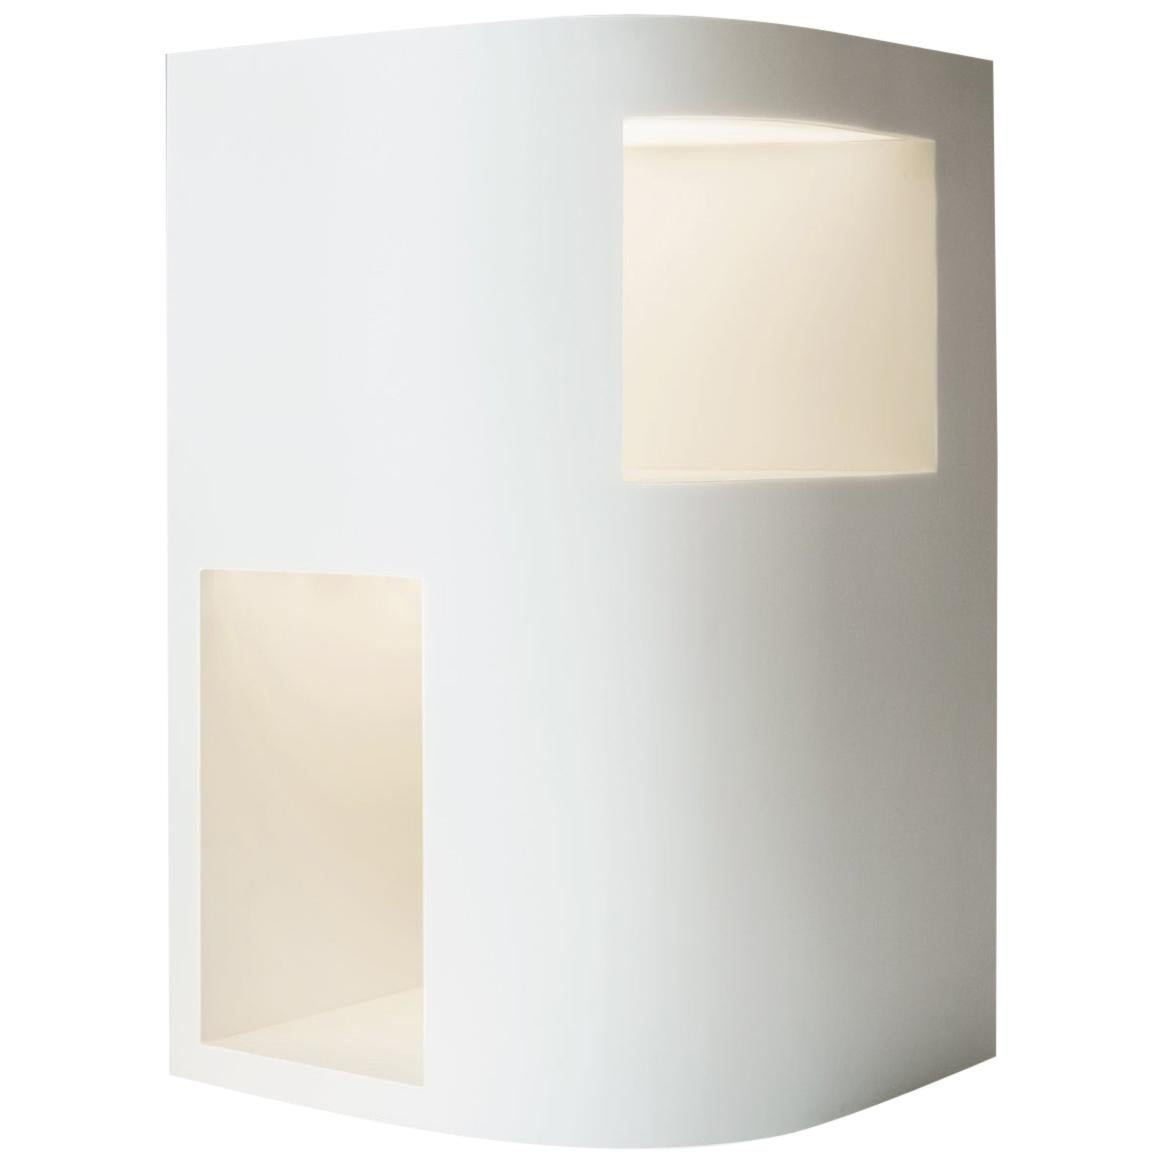 Floor Lamp Sculpture or End Table in White Corian, Limited Edition, III